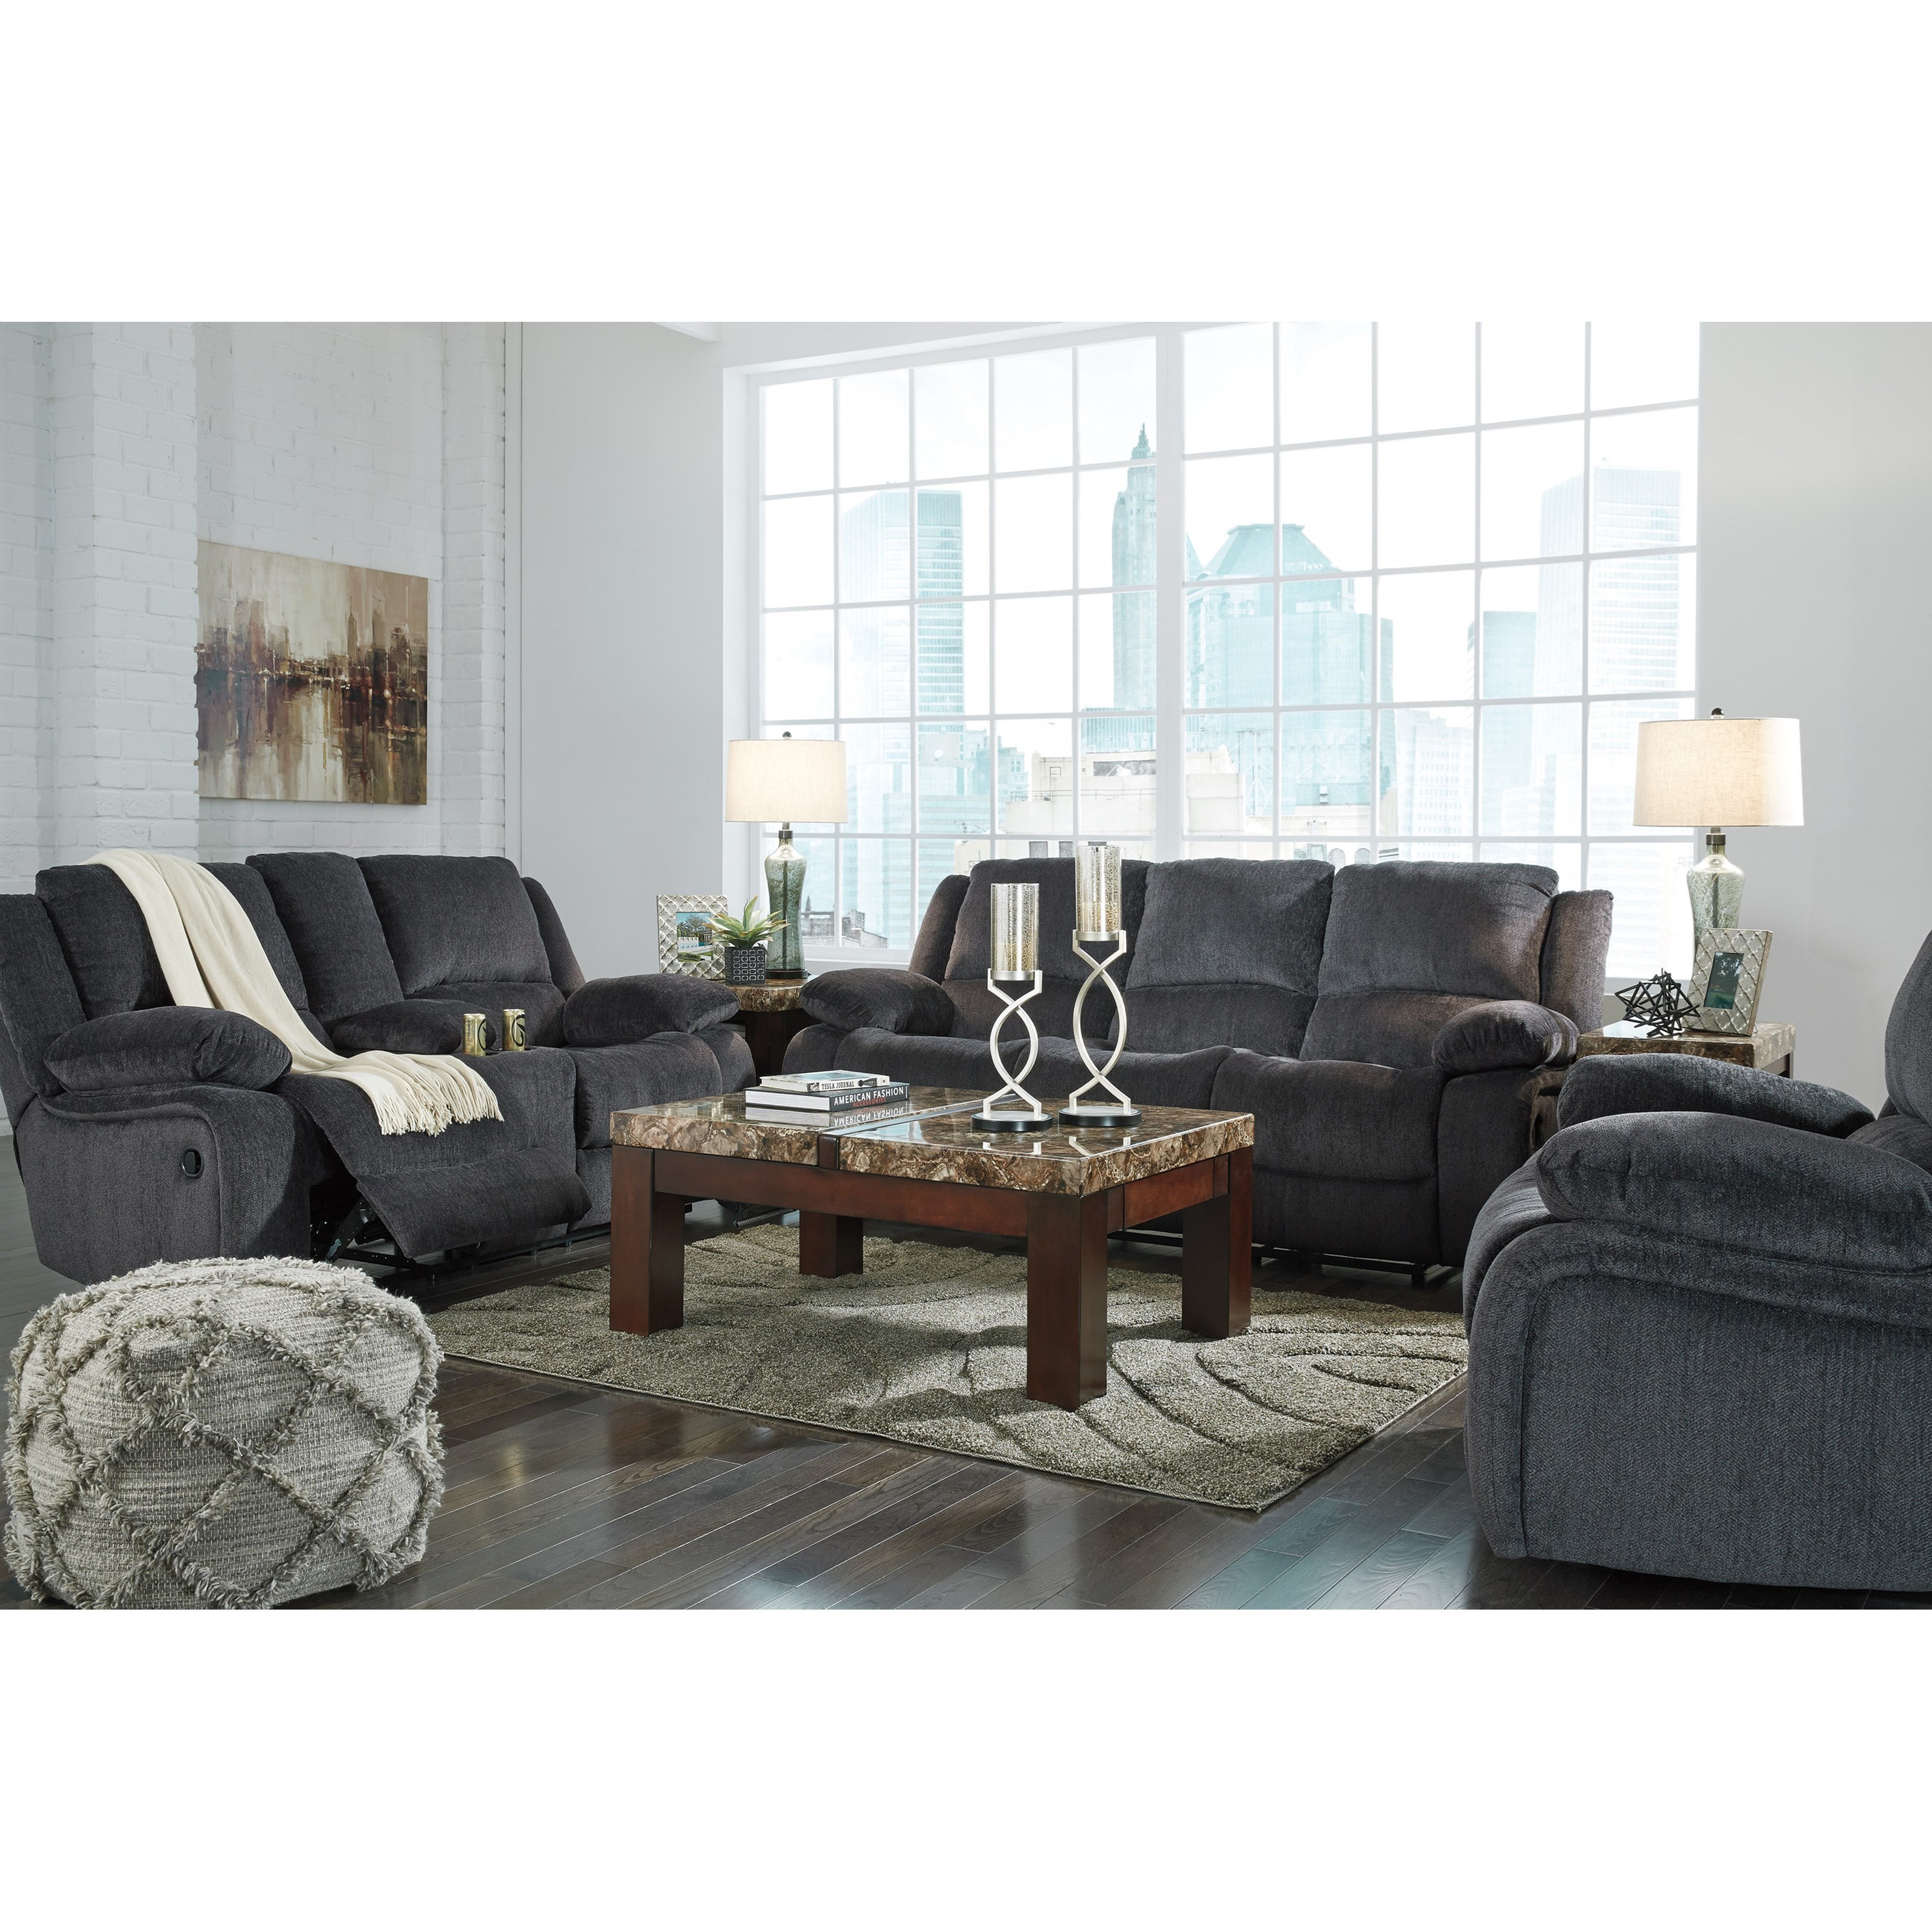 Signature design by ashley kellerhause reclining living for Living room furniture groups